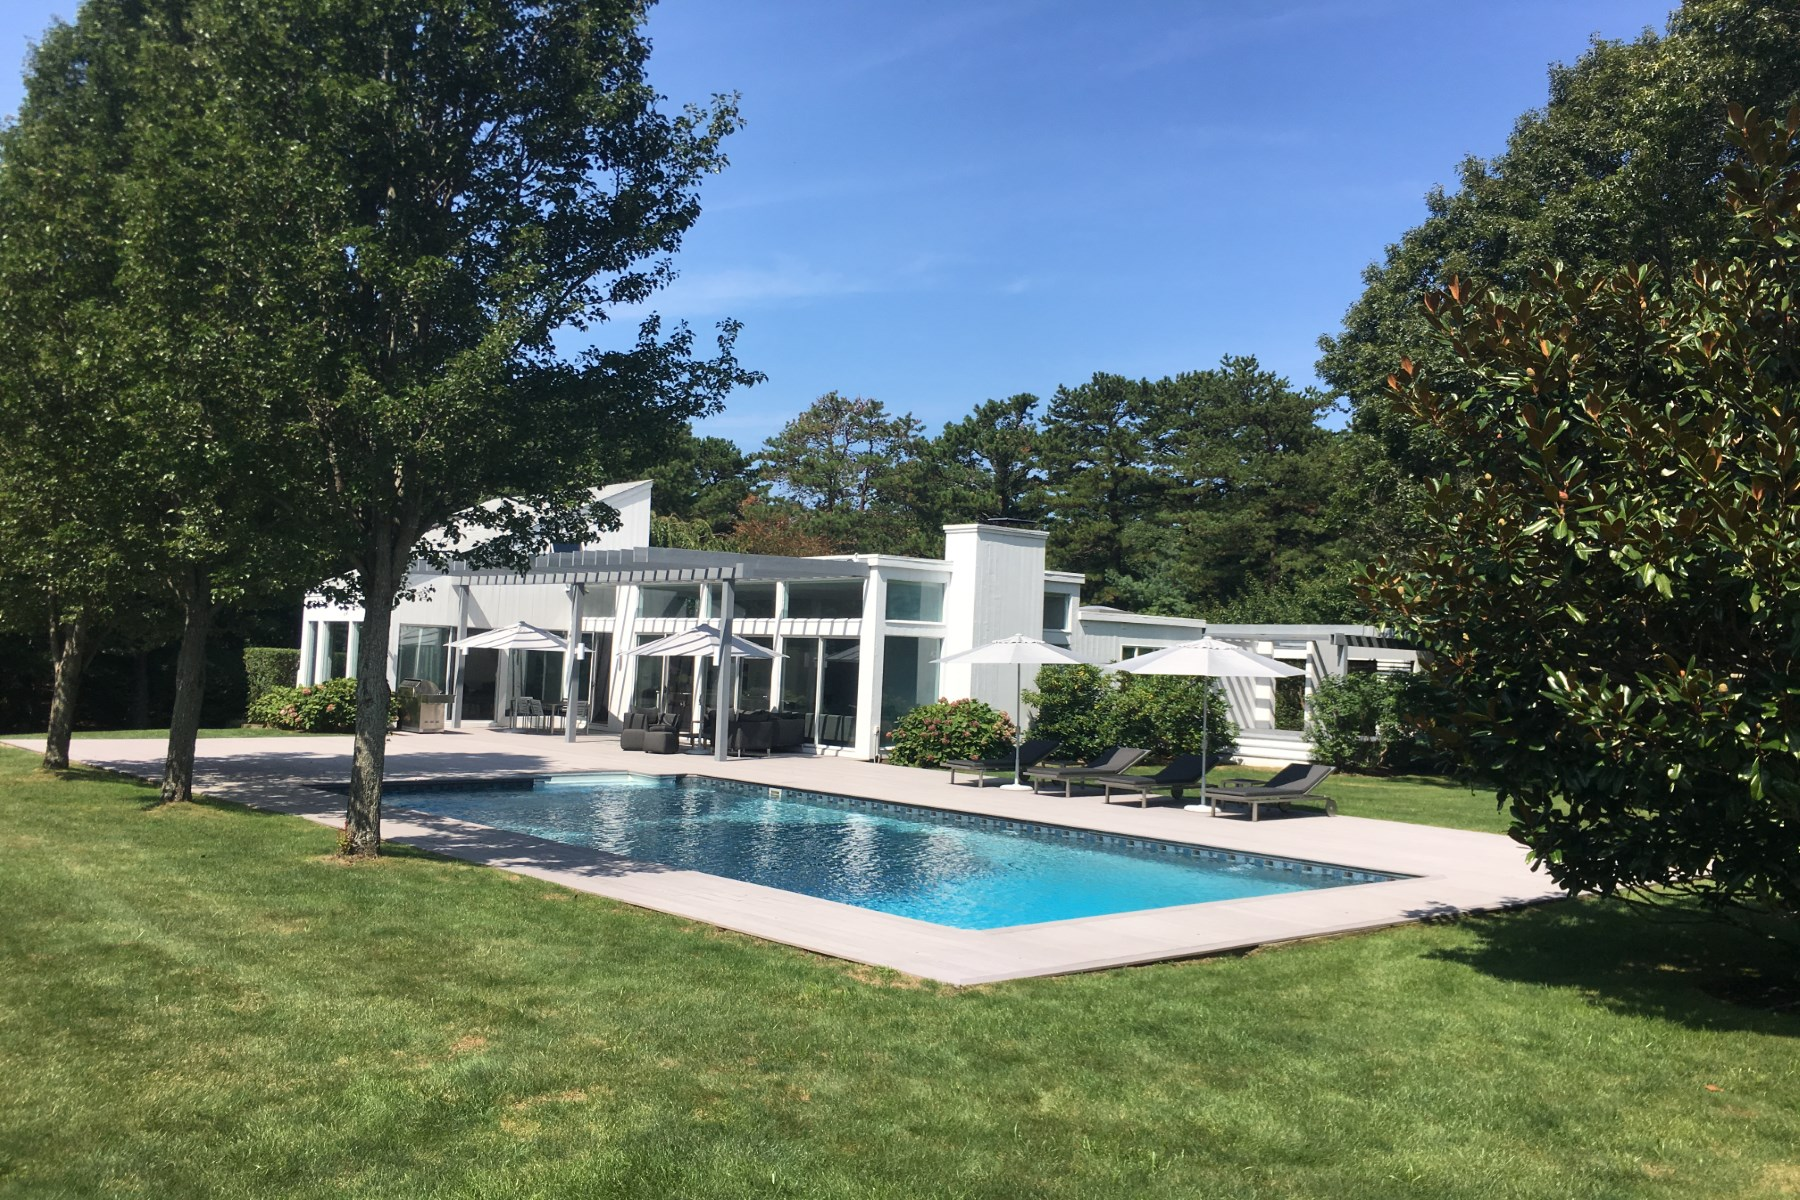 Casa para uma família para Venda às The Limelight Estate 580 Hands Creek Road East Hampton, Nova York, 11937 Estados Unidos